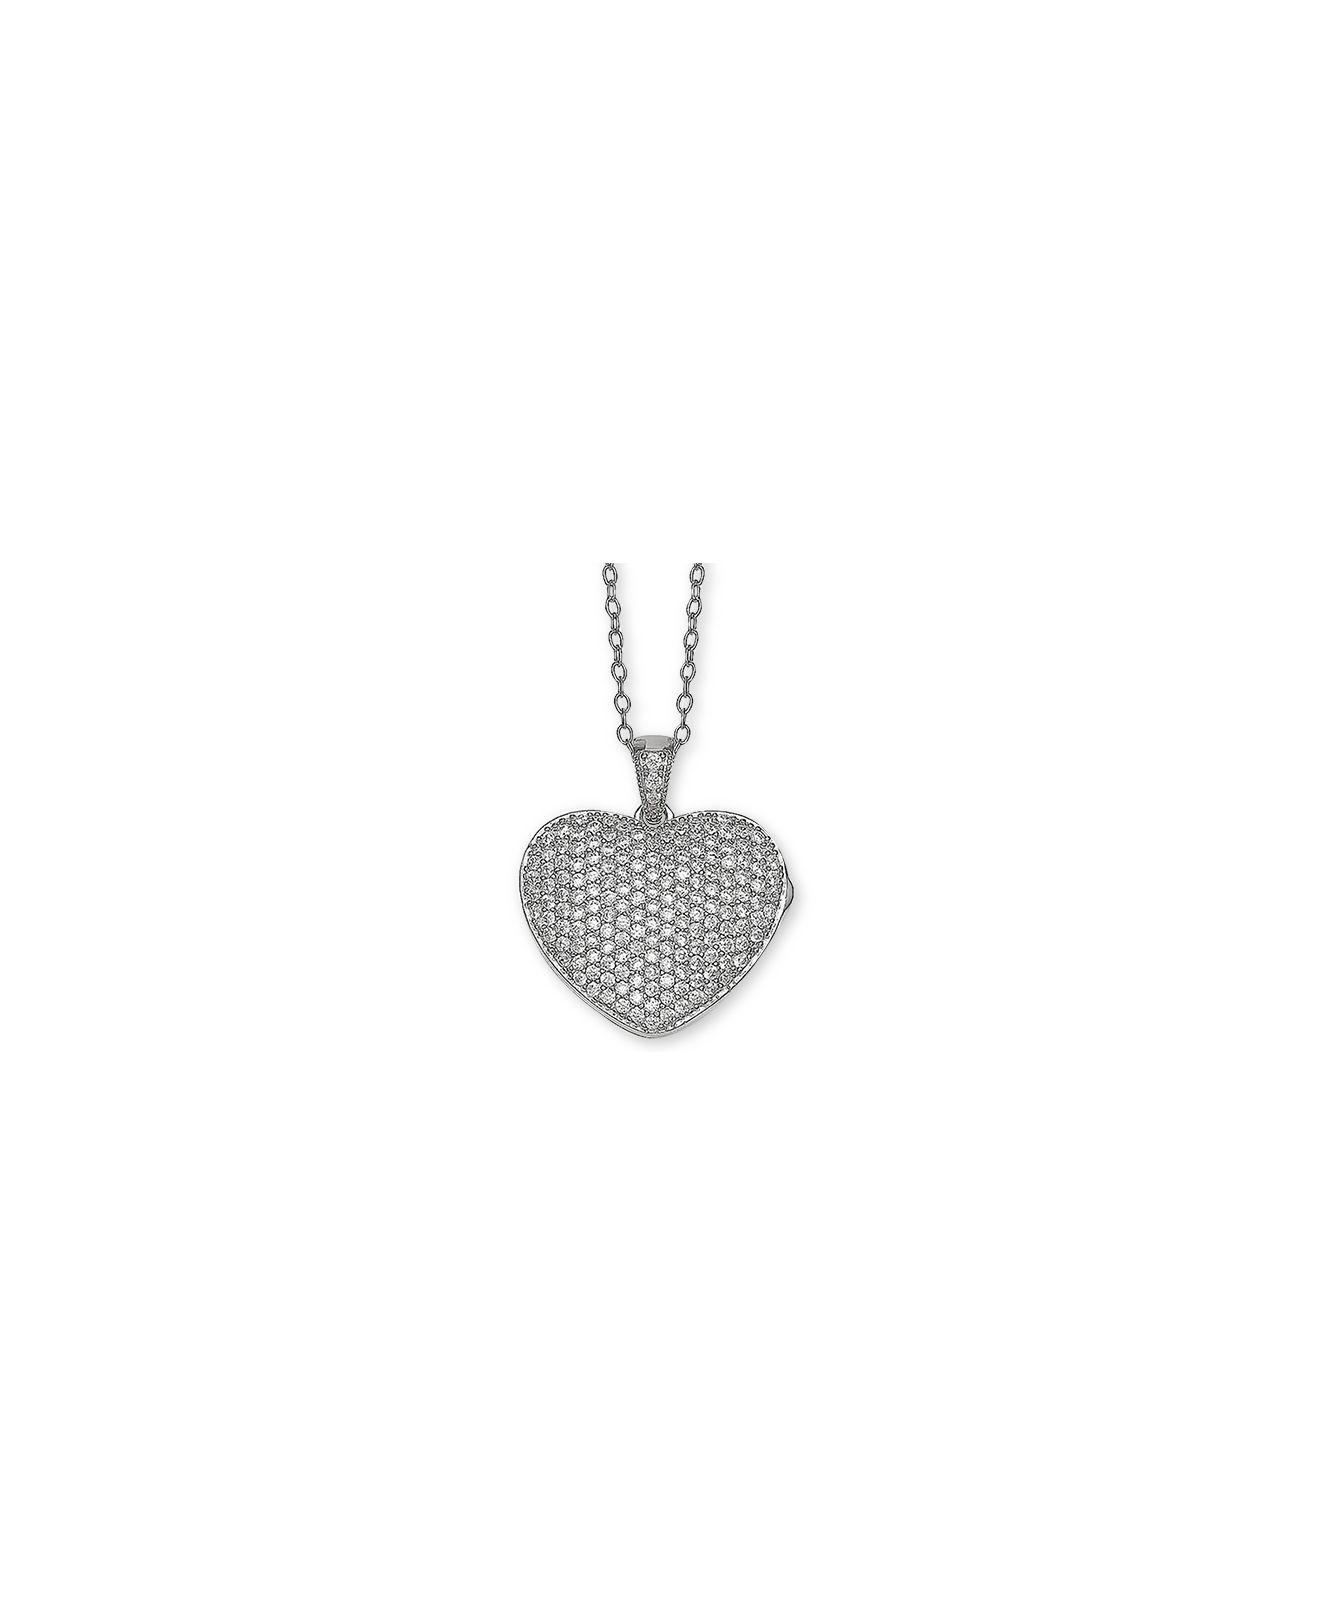 "Lyst – Giani Bernini Cubic Zirconia Pavé Heart Locket 18"" Pendant With Regard To Latest Pavé Locket Element Necklaces (View 12 of 25)"